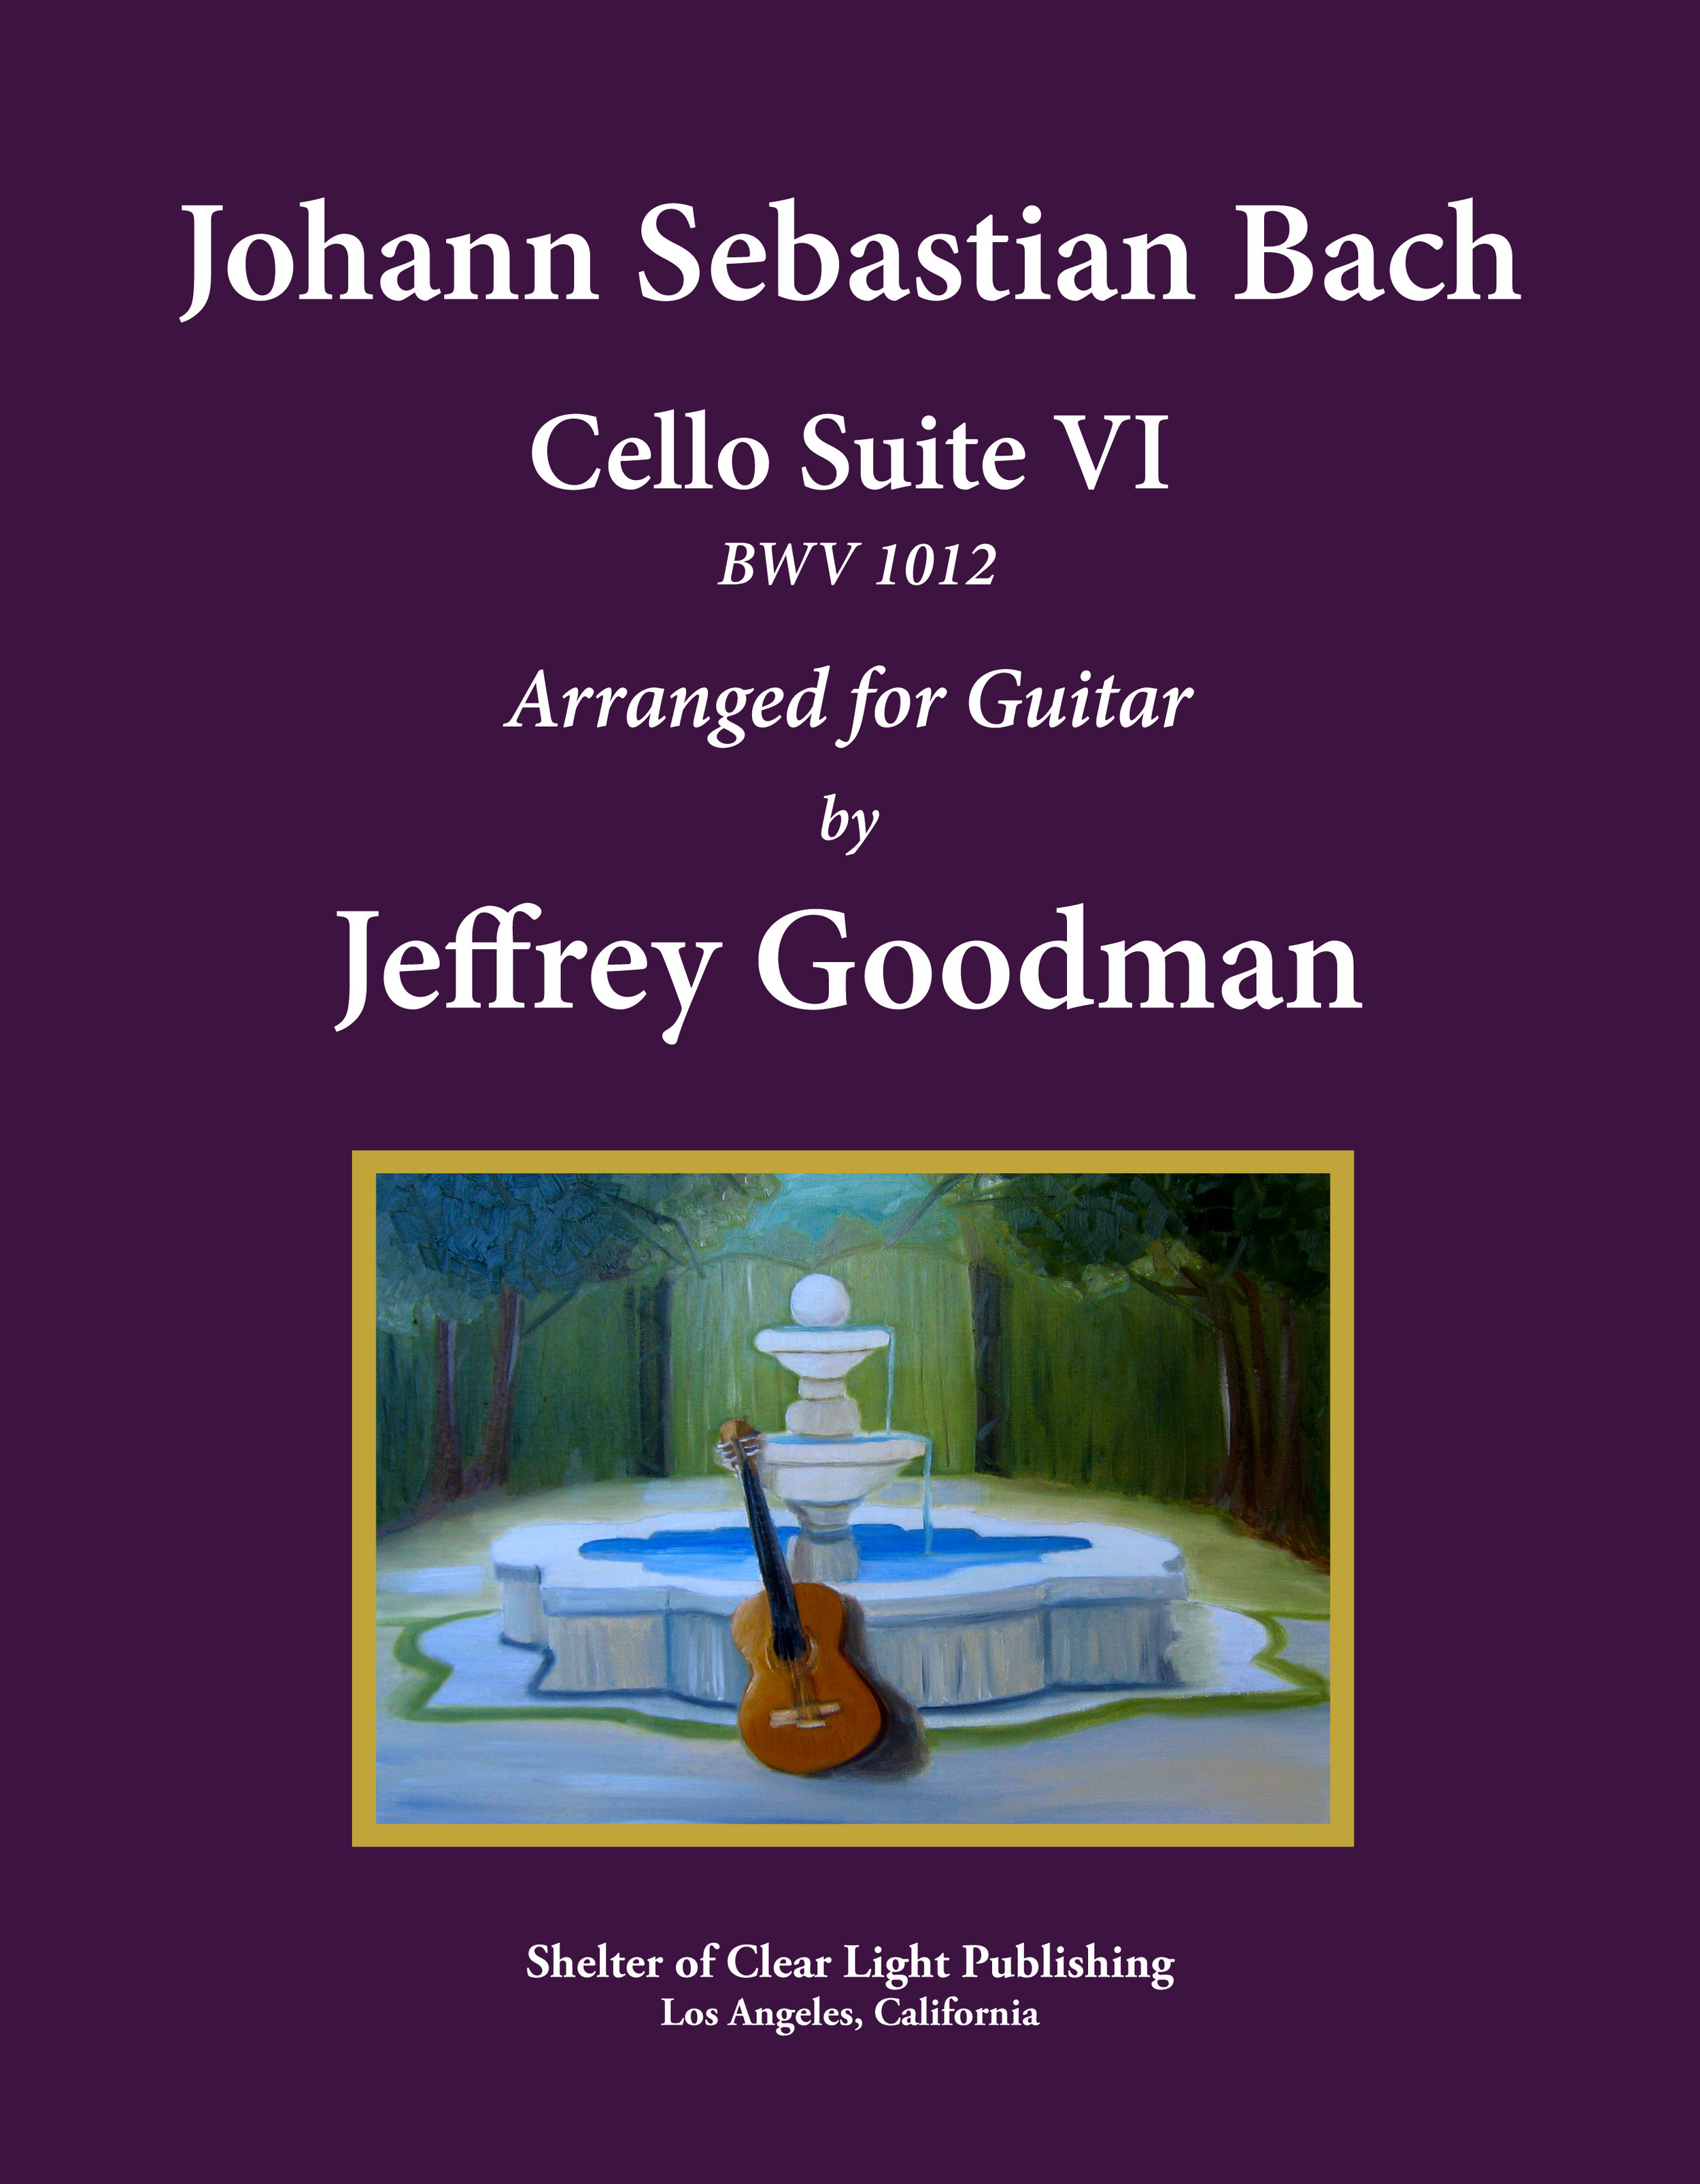 Bach Cello Suite VI cover 8x11.jpg